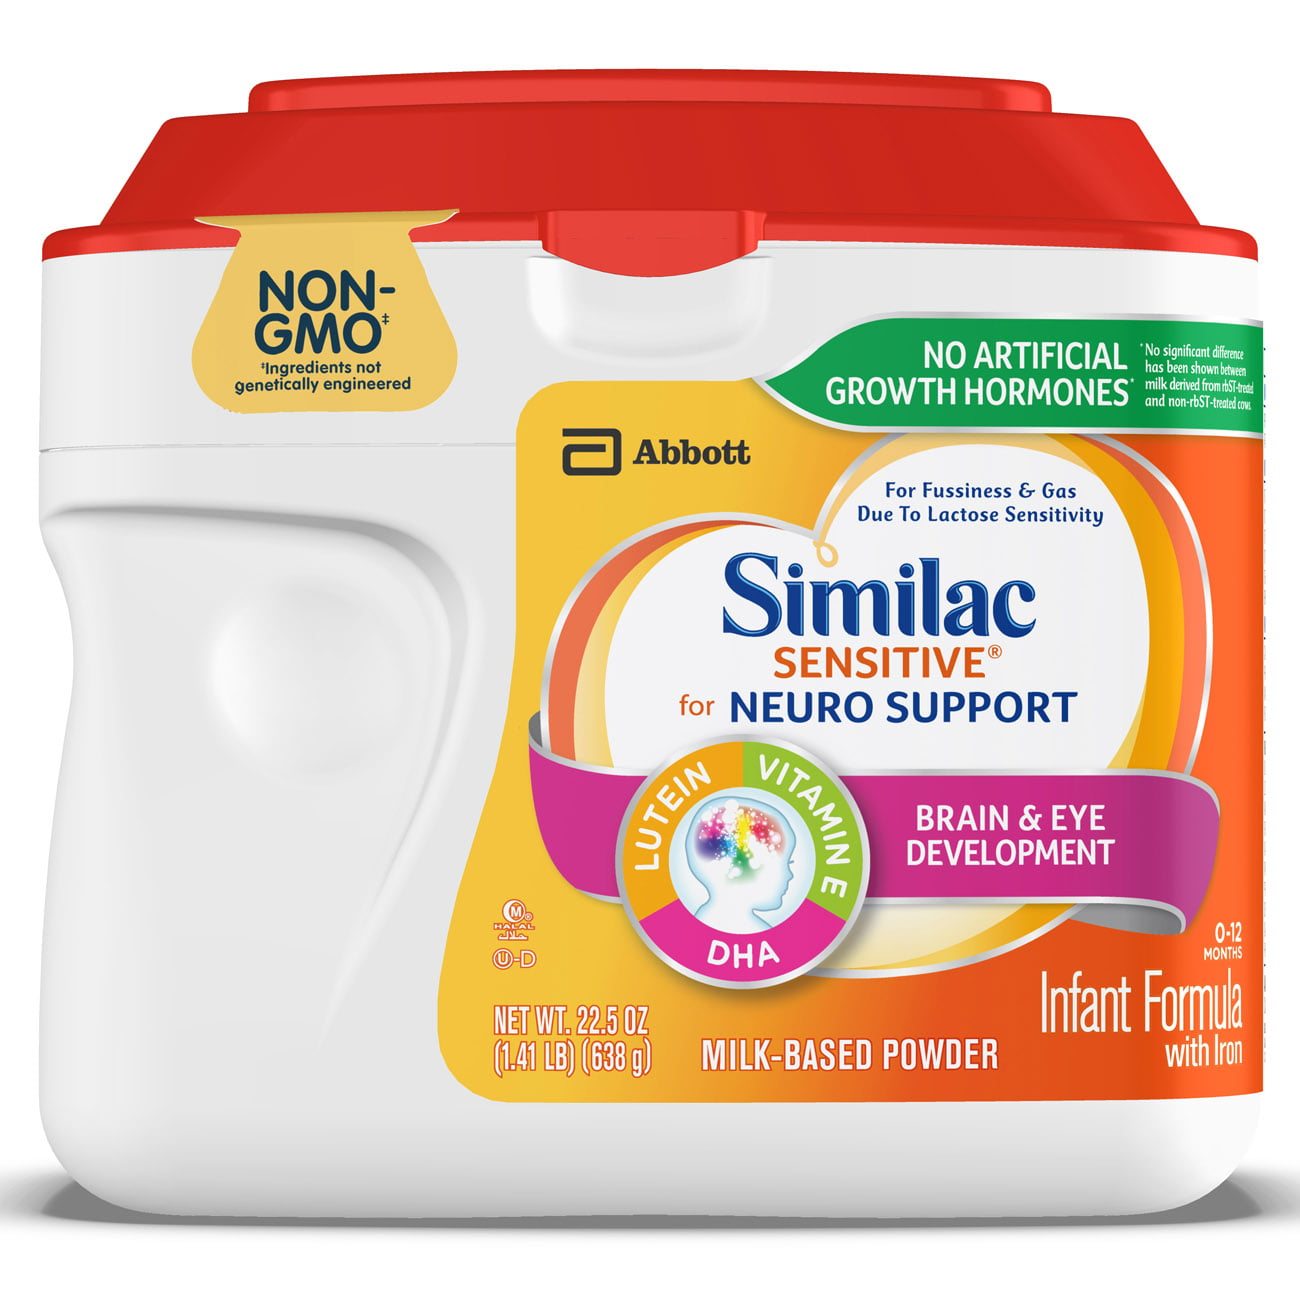 Similac Sensitive for Neuro Support Infant Formula with Iron Baby Formula 1.41 lb Canisters (Pack of 6) by Similac